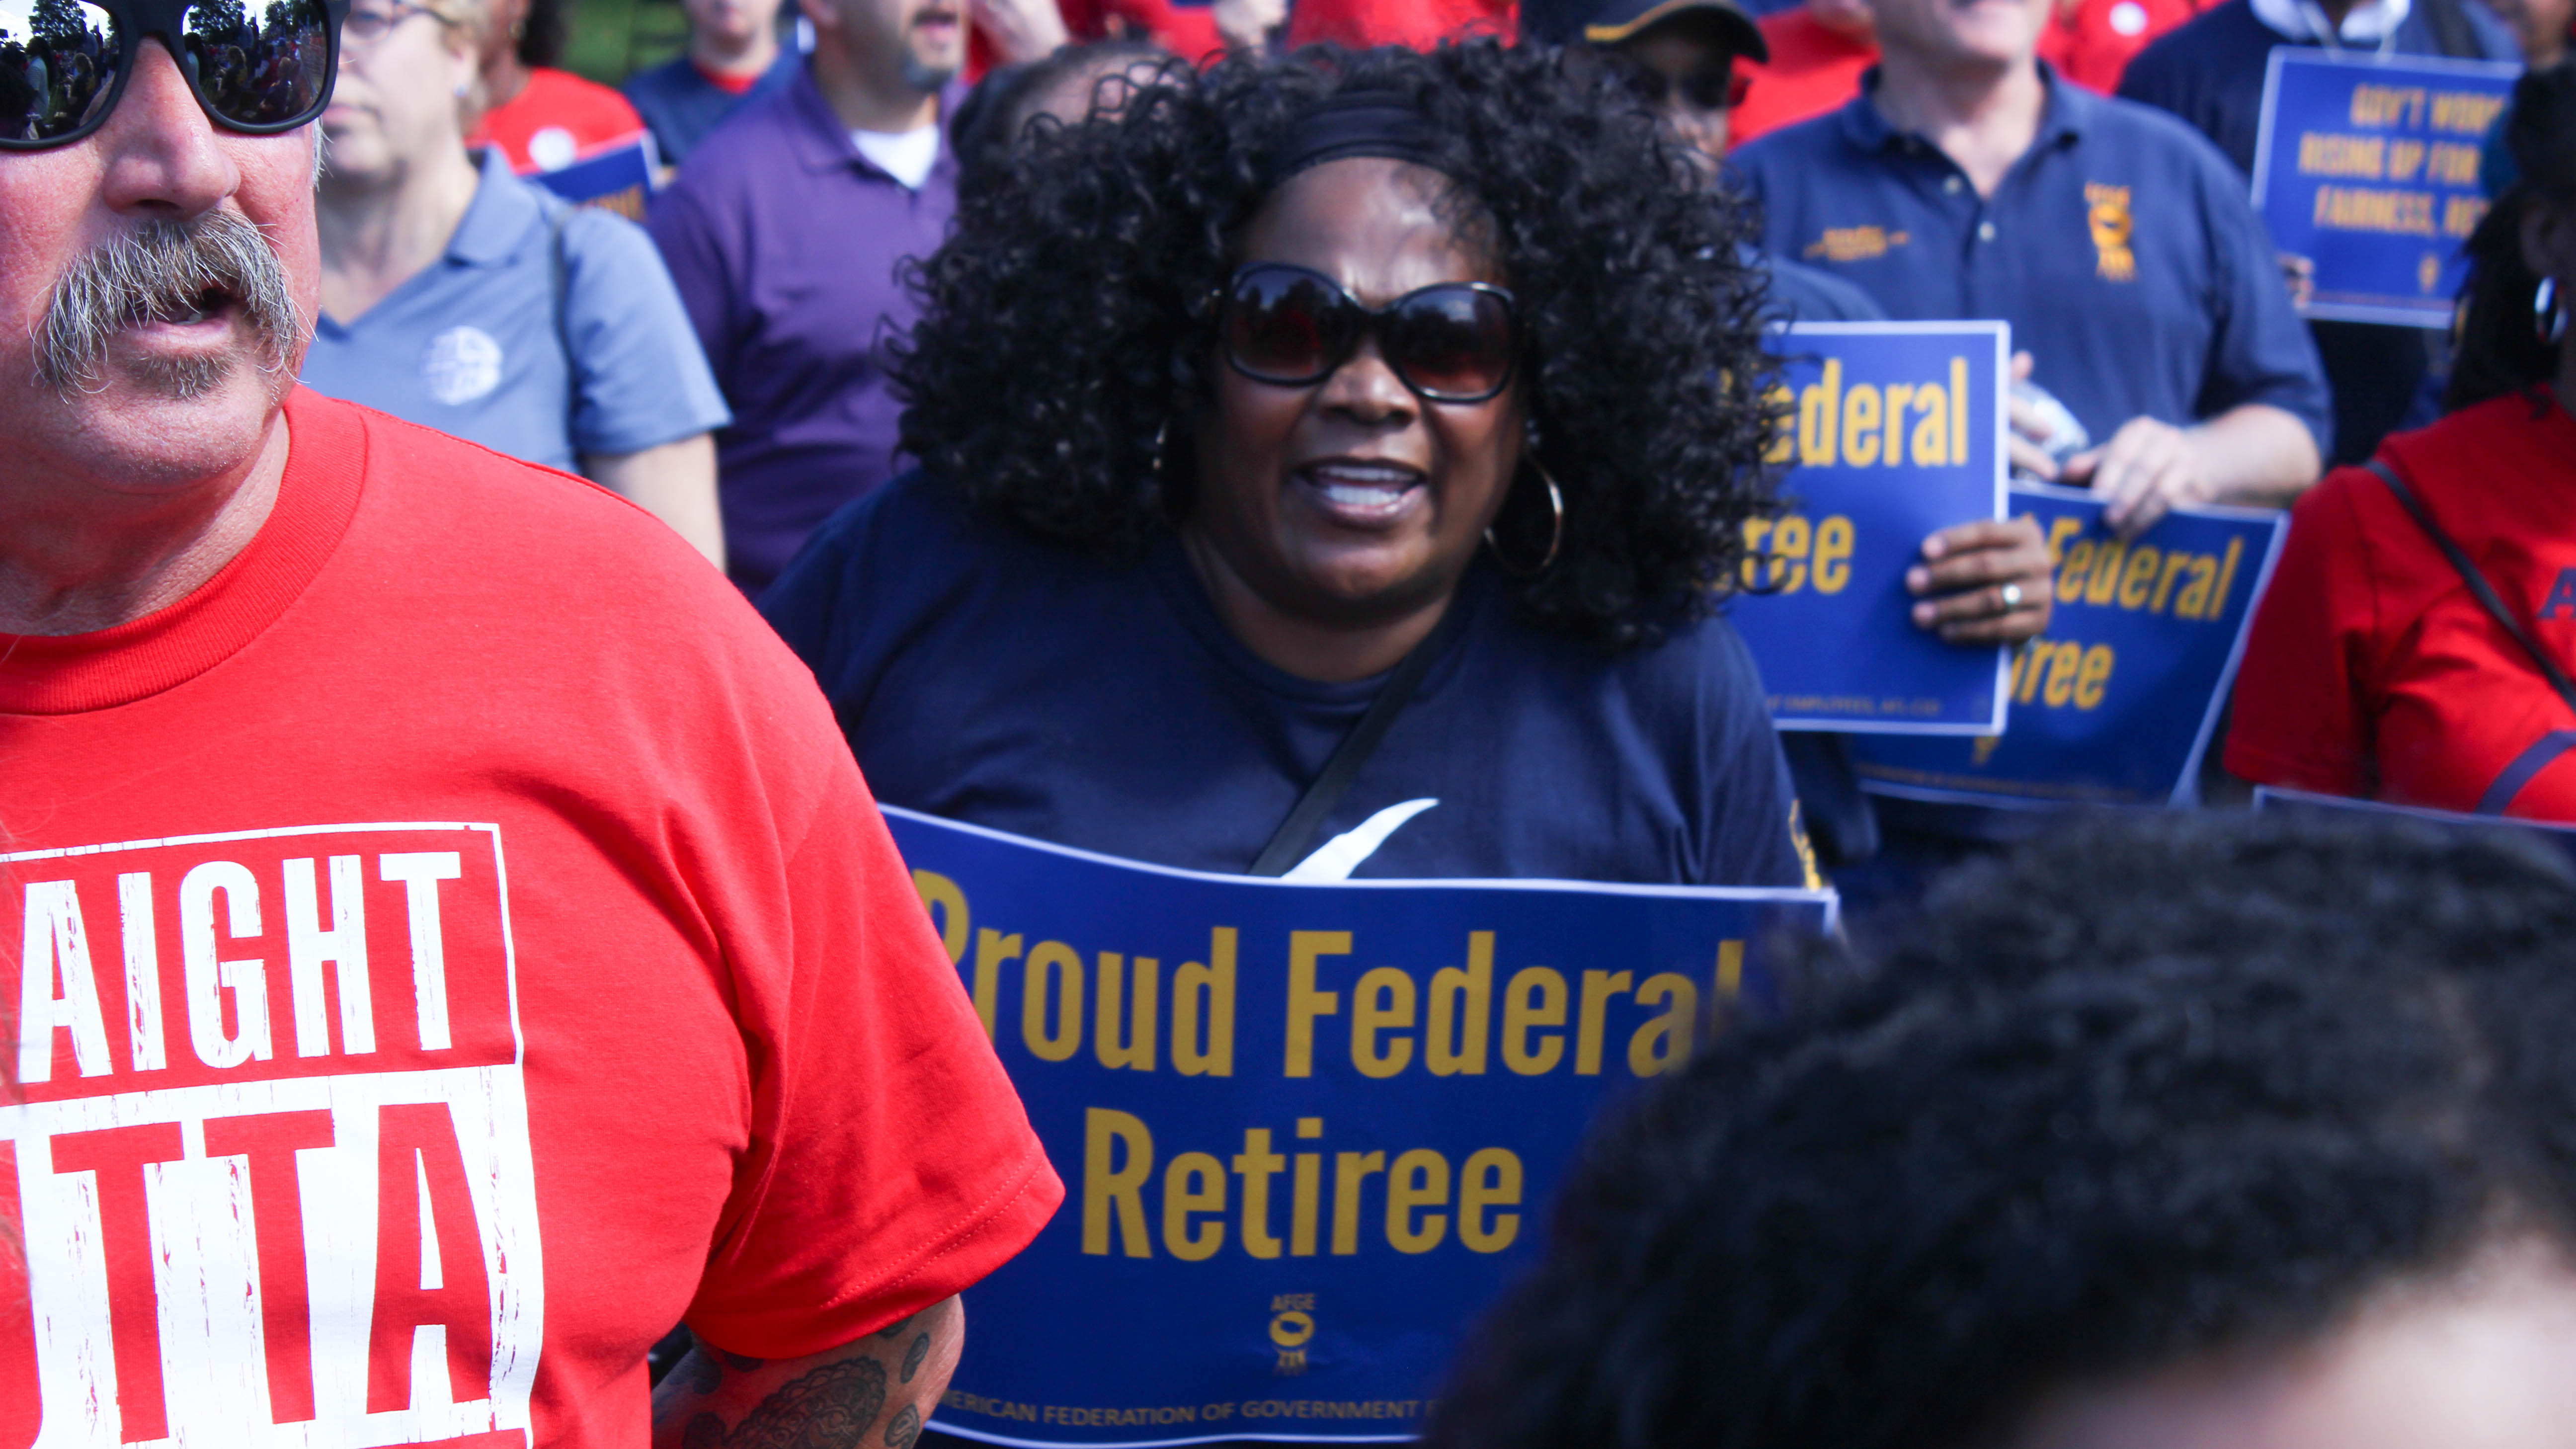 A former federal employee joins the Sept. 24 protest outside the U.S. Capitol building for union rights. (Jessie Bur/Staff)